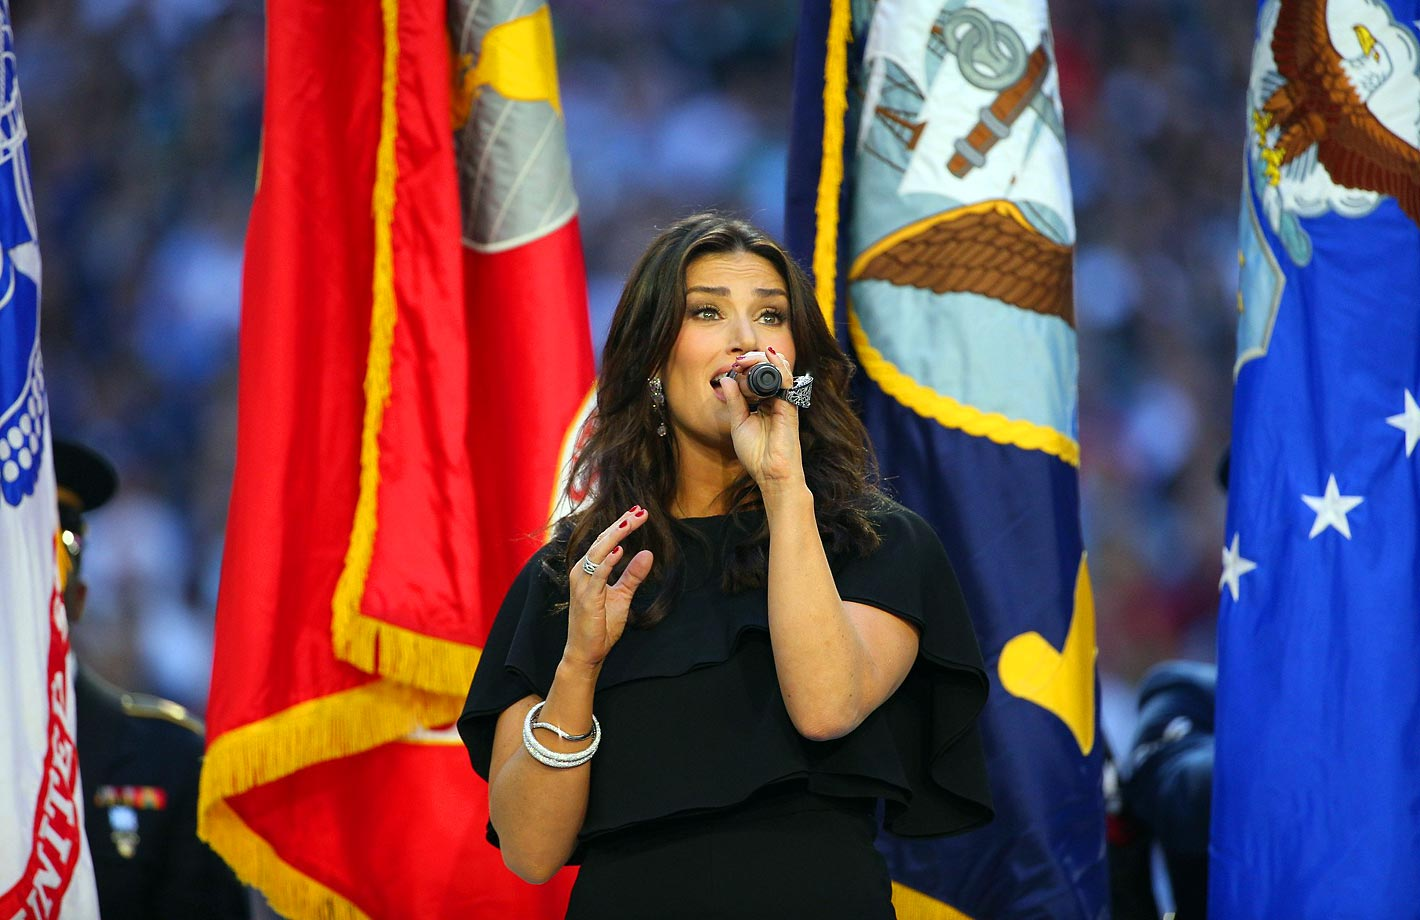 Singer Idina Menzel sings the national anthem prior to Super Bowl XLIX.